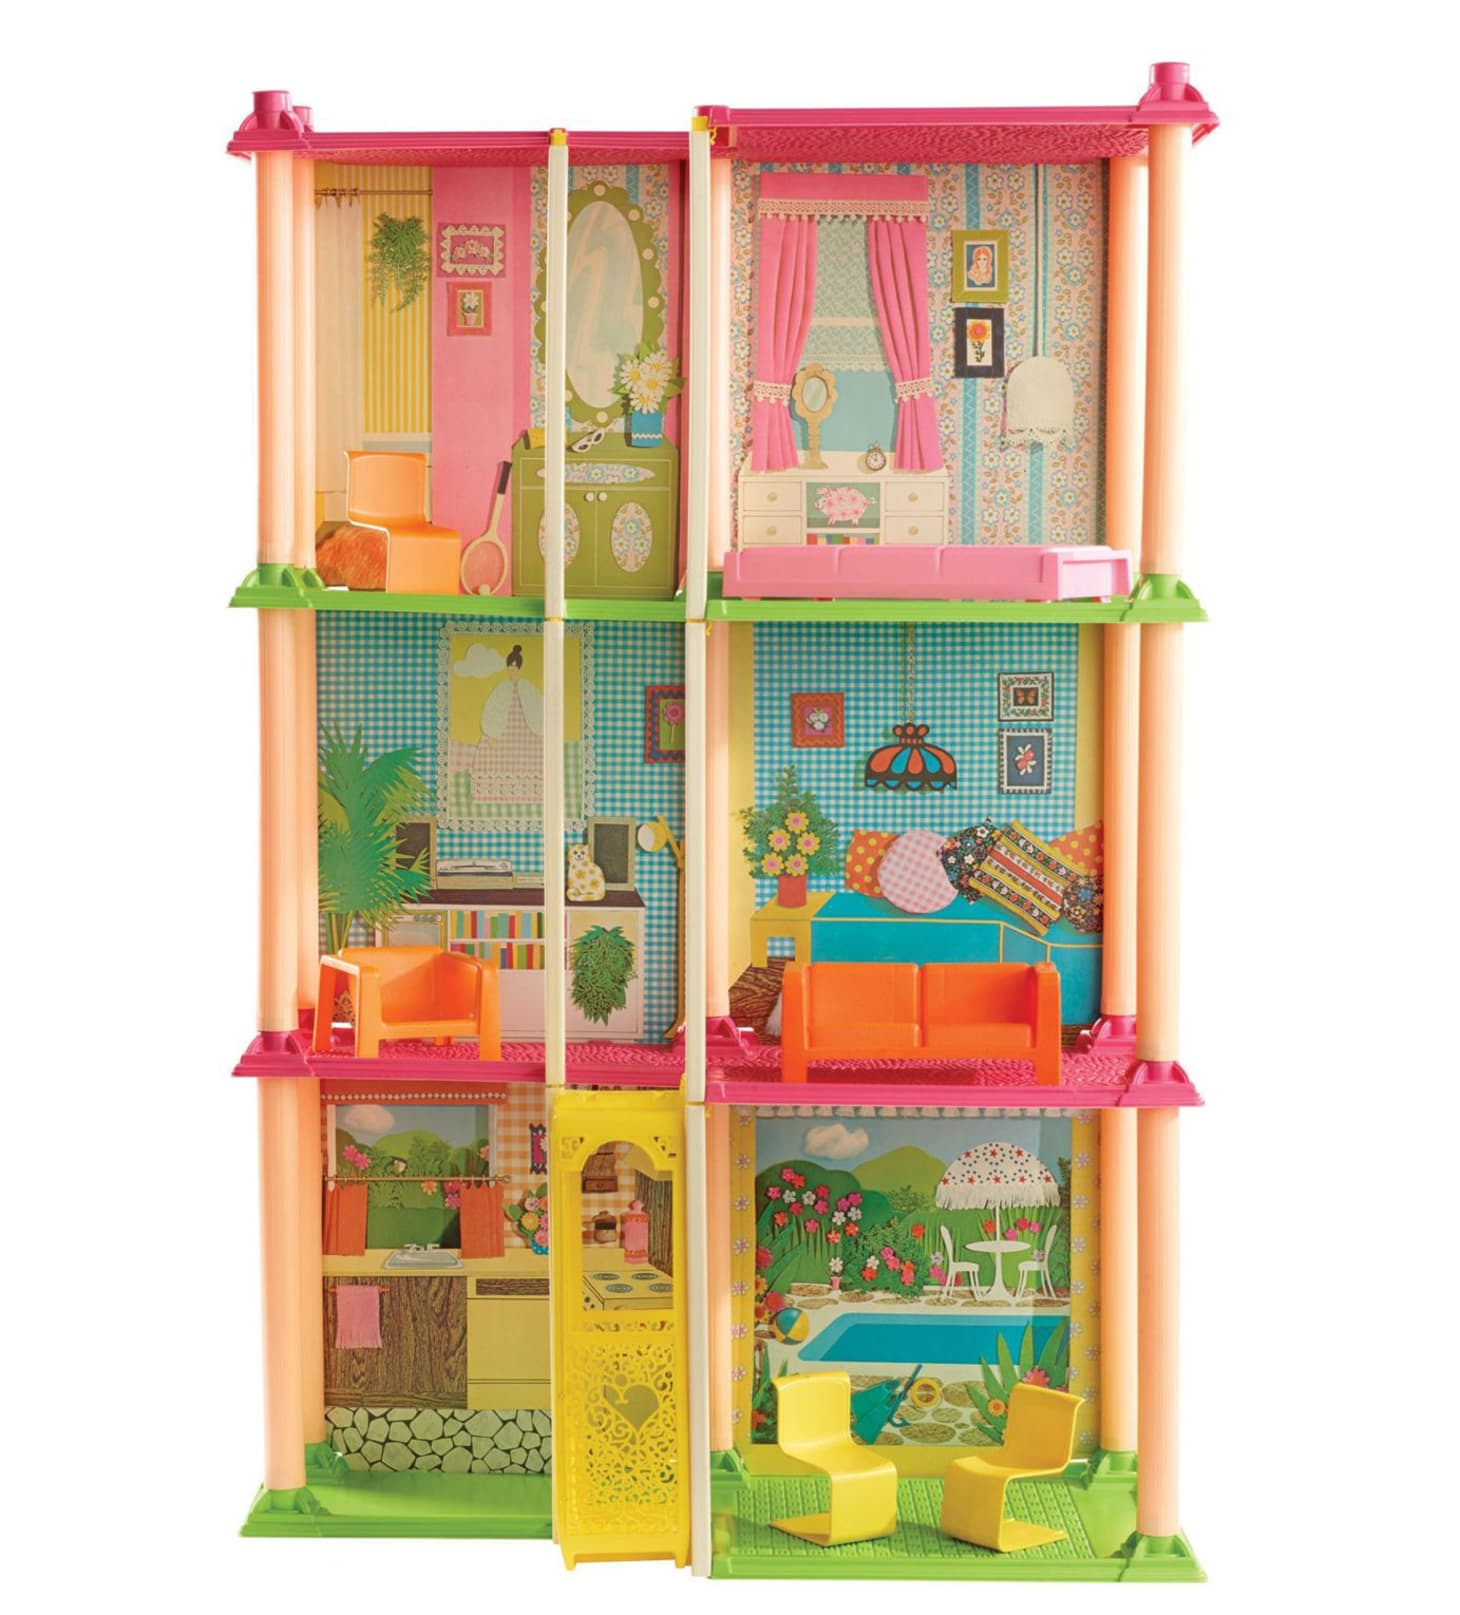 Astounding Barbie Dreamhouse Design History Architect Review Download Free Architecture Designs Rallybritishbridgeorg